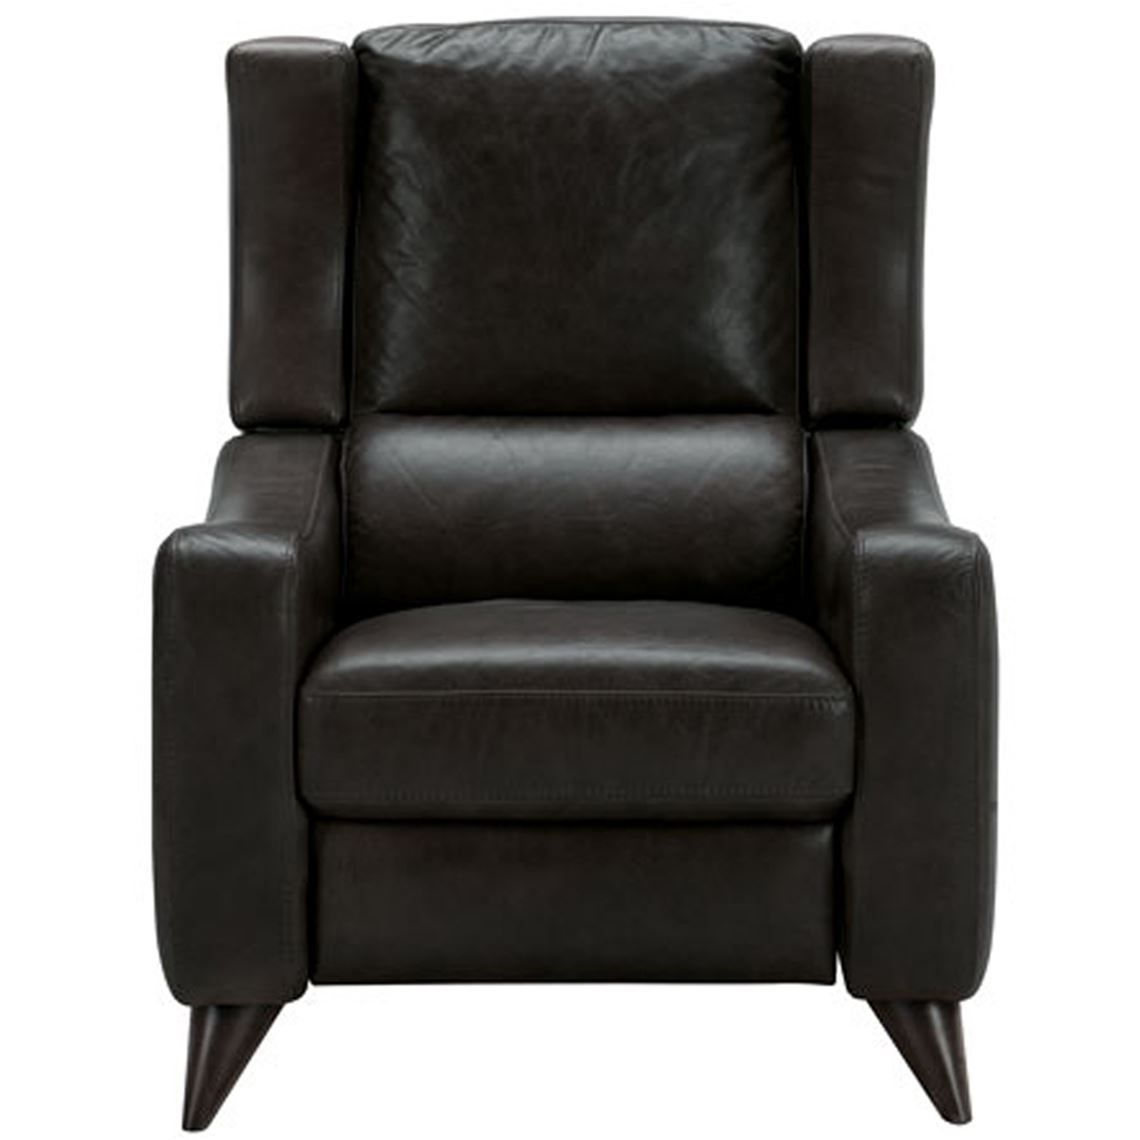 Fidel Recliner Armchair Armchair Recliner Leather Recliner